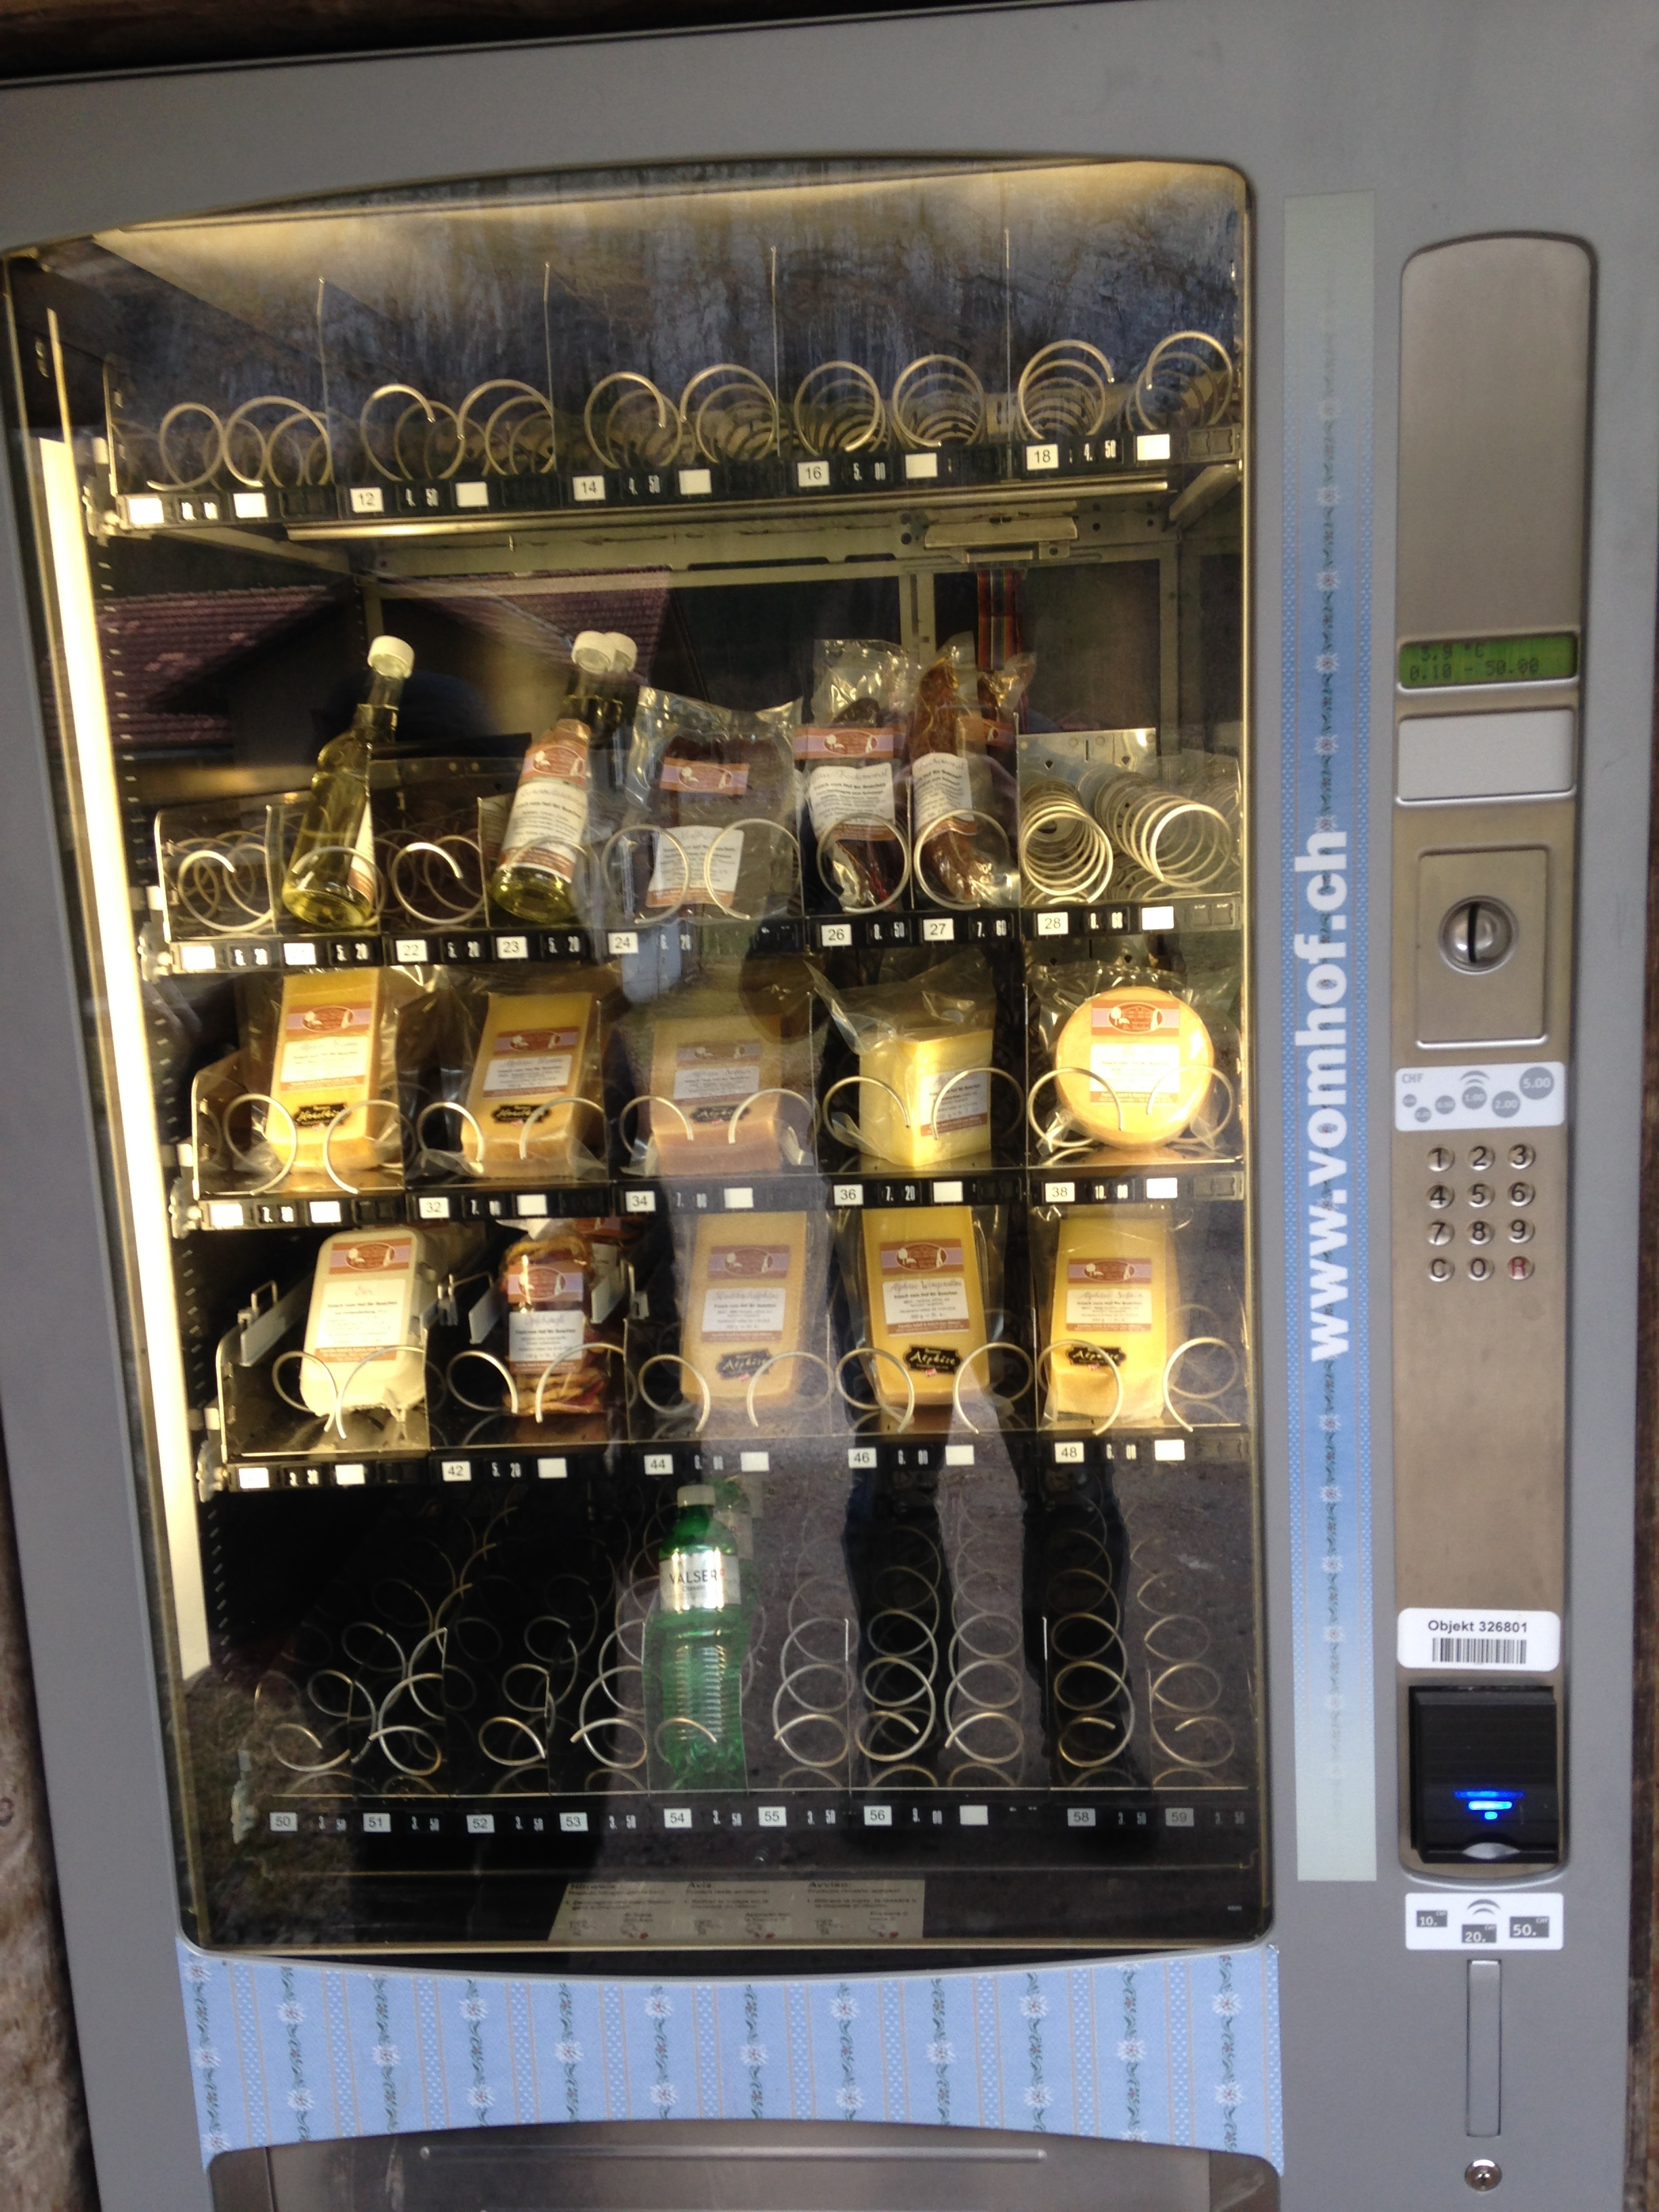 . . . an outdoor cheese vending machine?